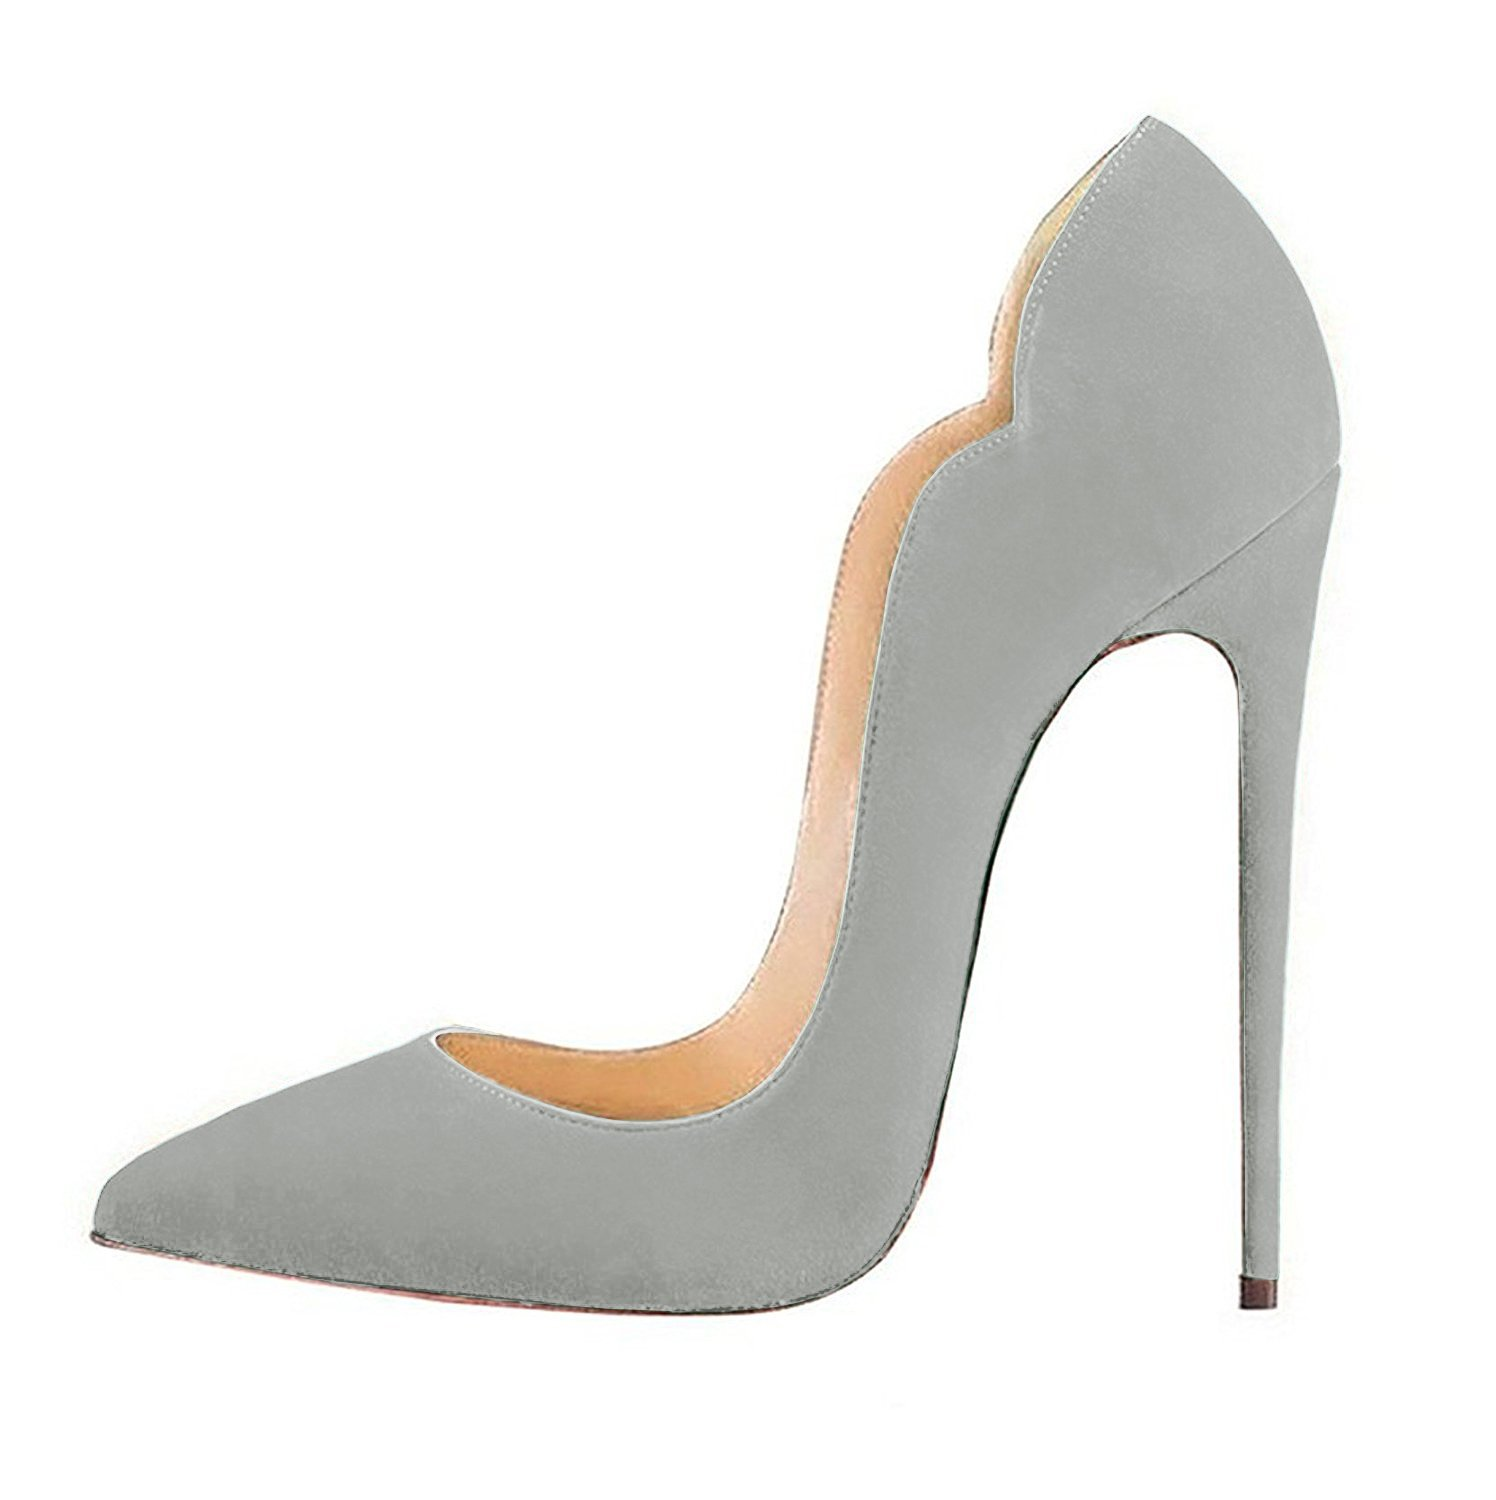 FSJ Women Classic Pointed Toe High Heels Sexy Stiletto Pumps Office Lady Dress Shoes Size 4-15 US B077SSCWLD 4 B(M) US|Grey-suede